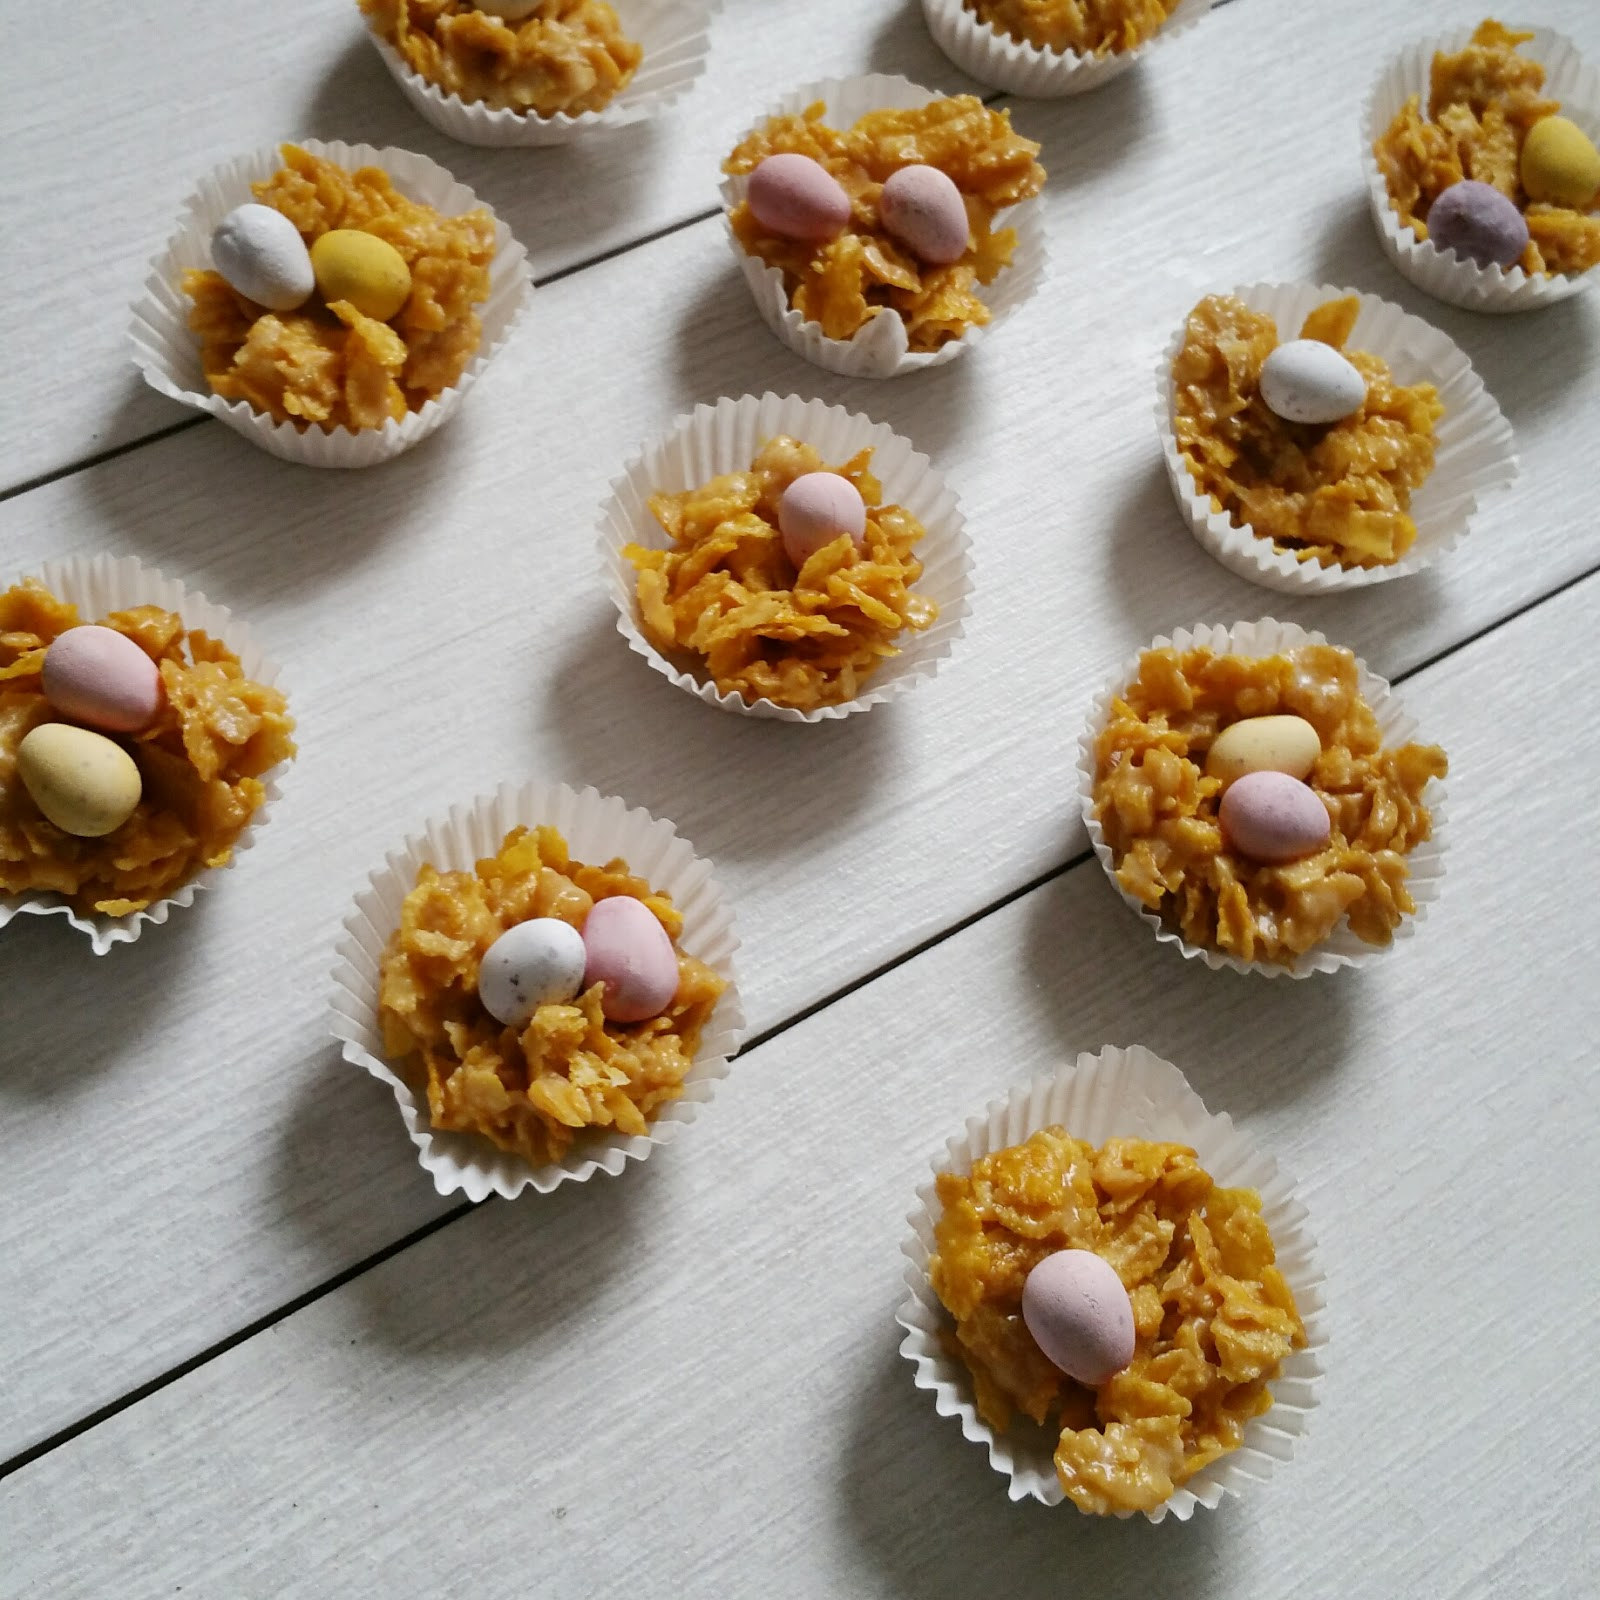 Golden Syrup Cereal Cake Recipe